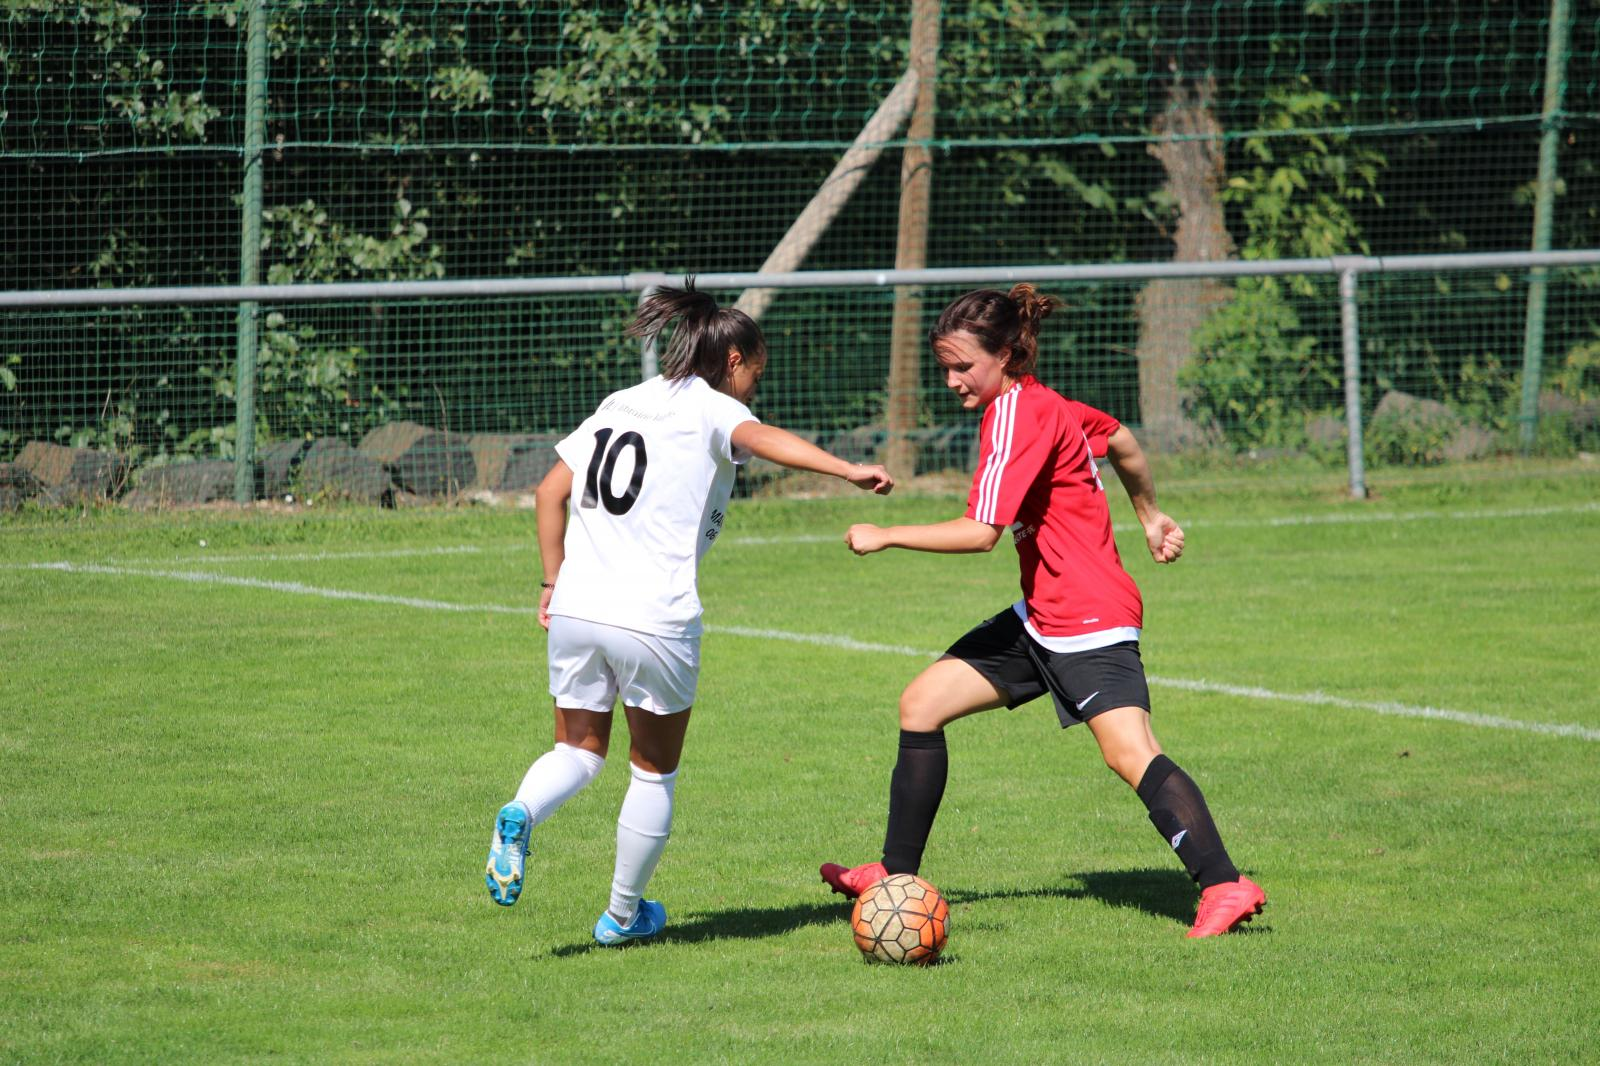 Match amical Séniors F contre St Julien Chapteuil